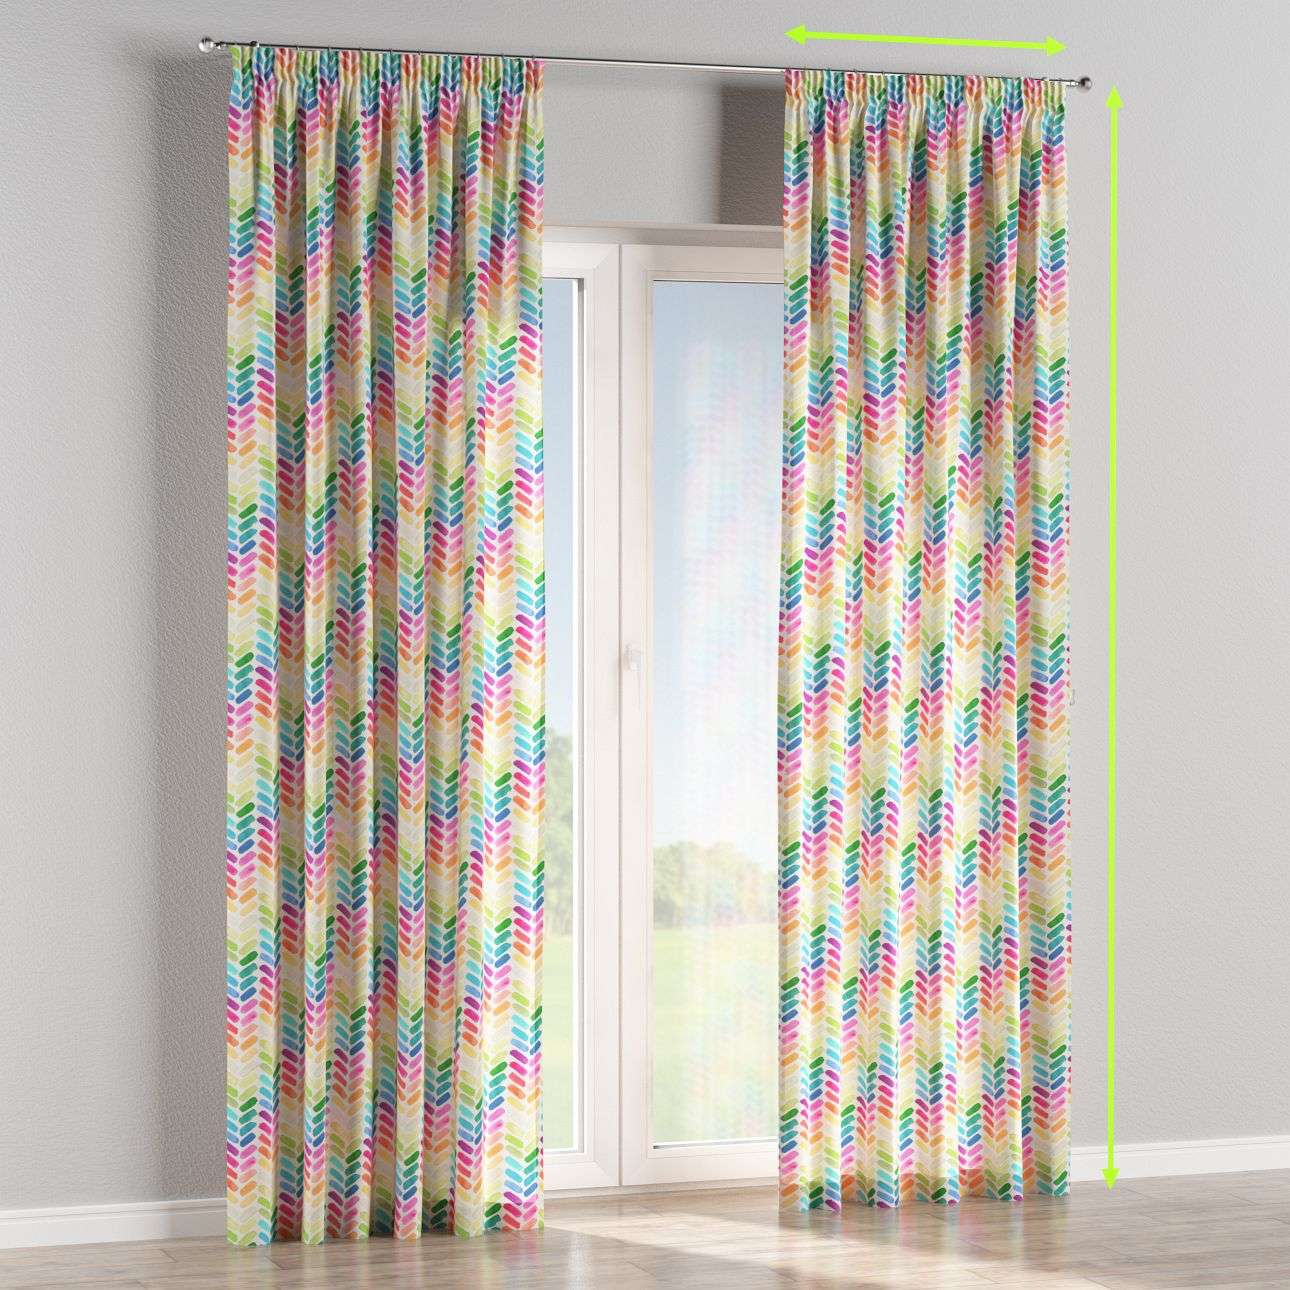 Pencil pleat curtains in collection New Art, fabric: 140-25